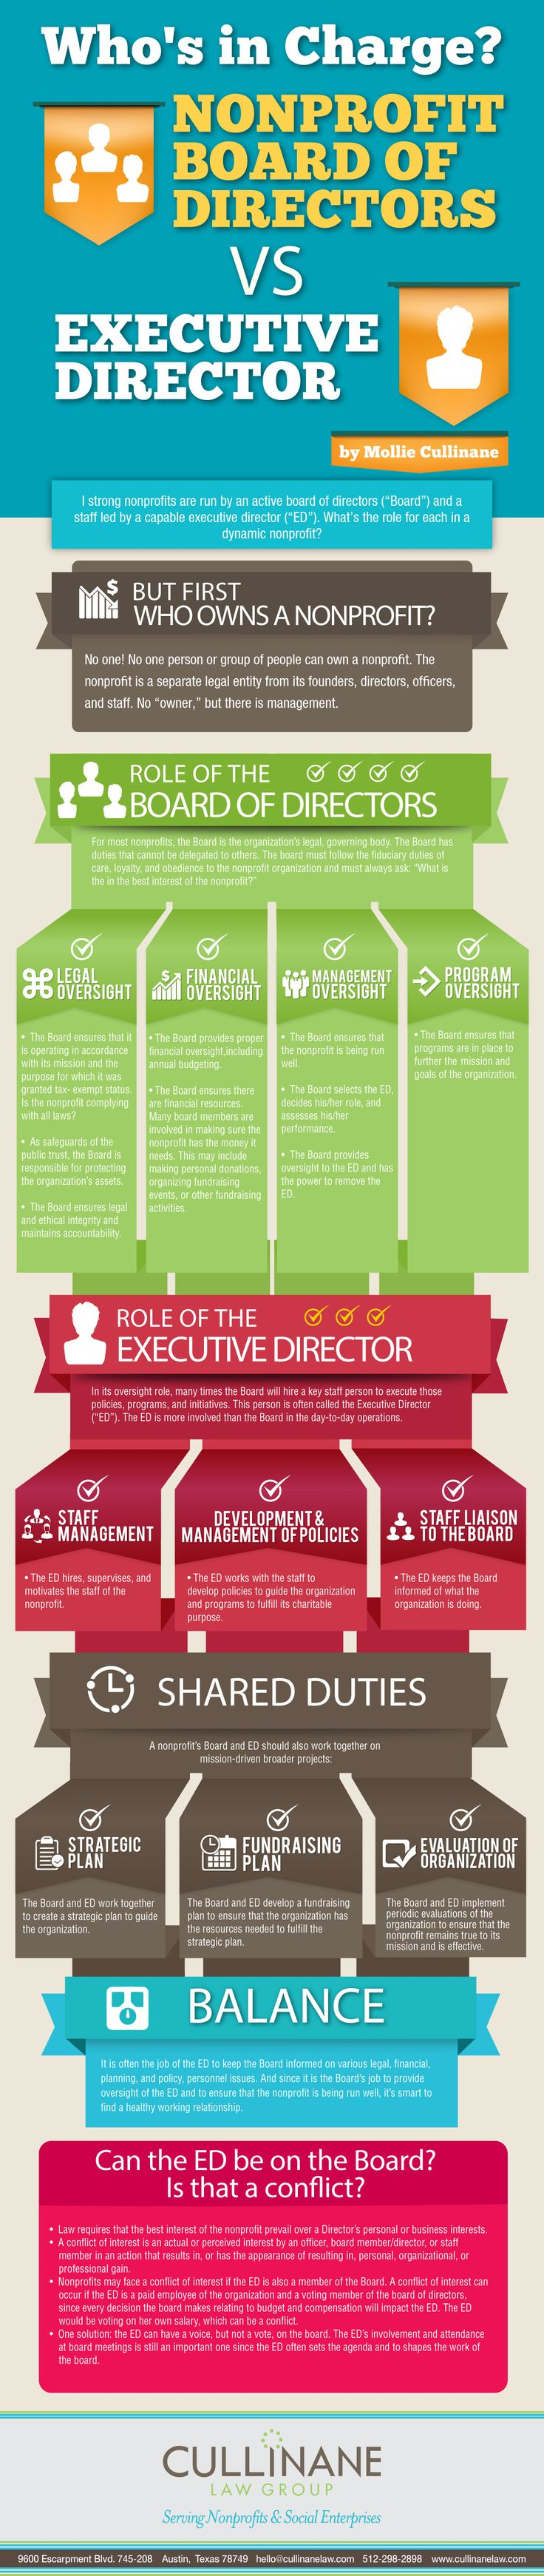 www.cullinanelaw.com Who's In Charge? The Board of Directors or the Executive Director? http://www.cullinanelaw.com/nonprofit-law-basics-what-are-the-duties-of-nonprofit-directors/